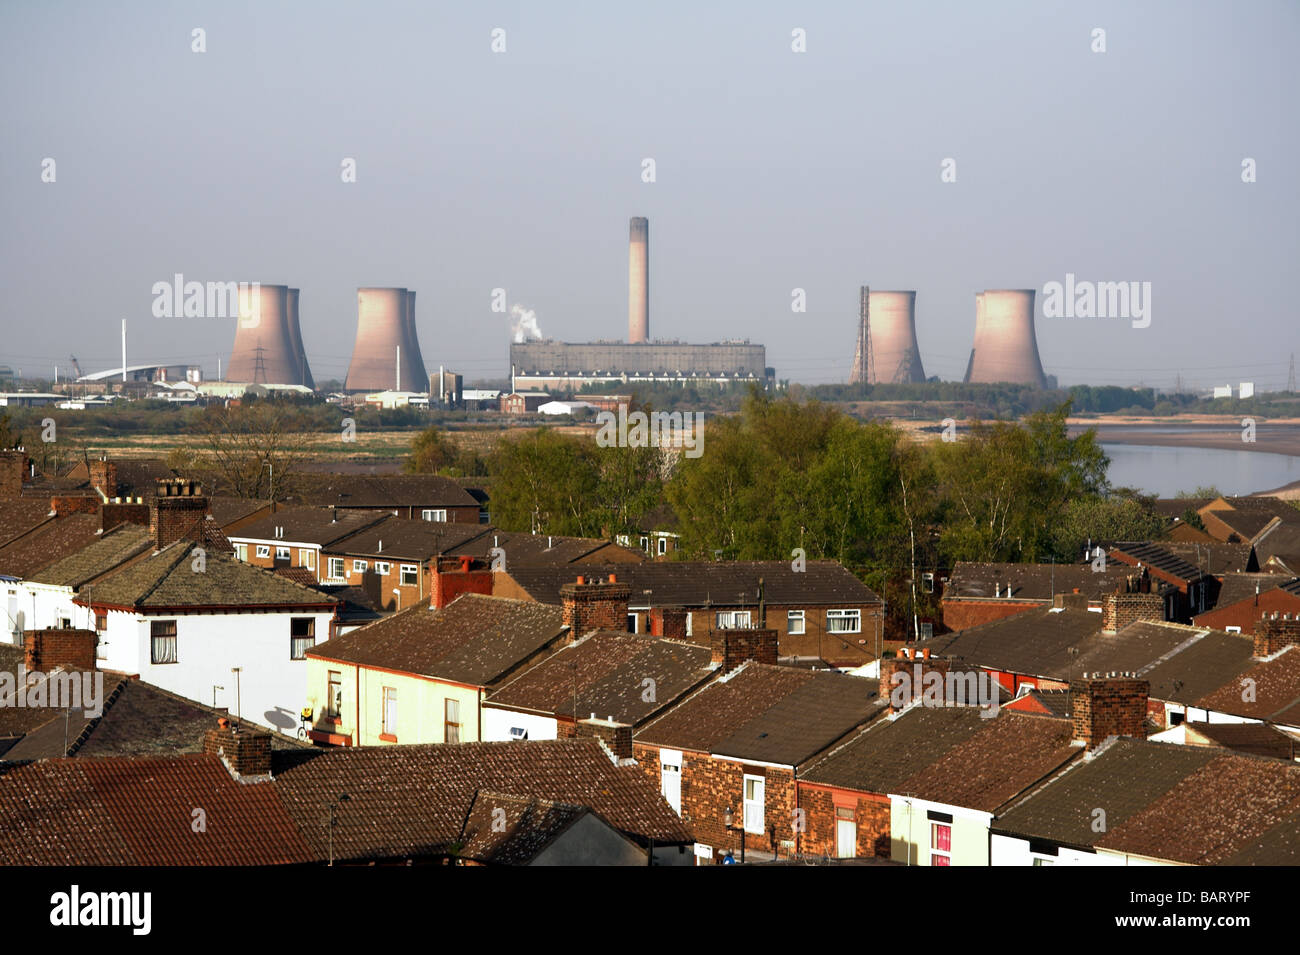 View from Runcorn Bridge over Widnes, to Fiddlers Ferry Power Station, Cheshire, UK - Stock Image